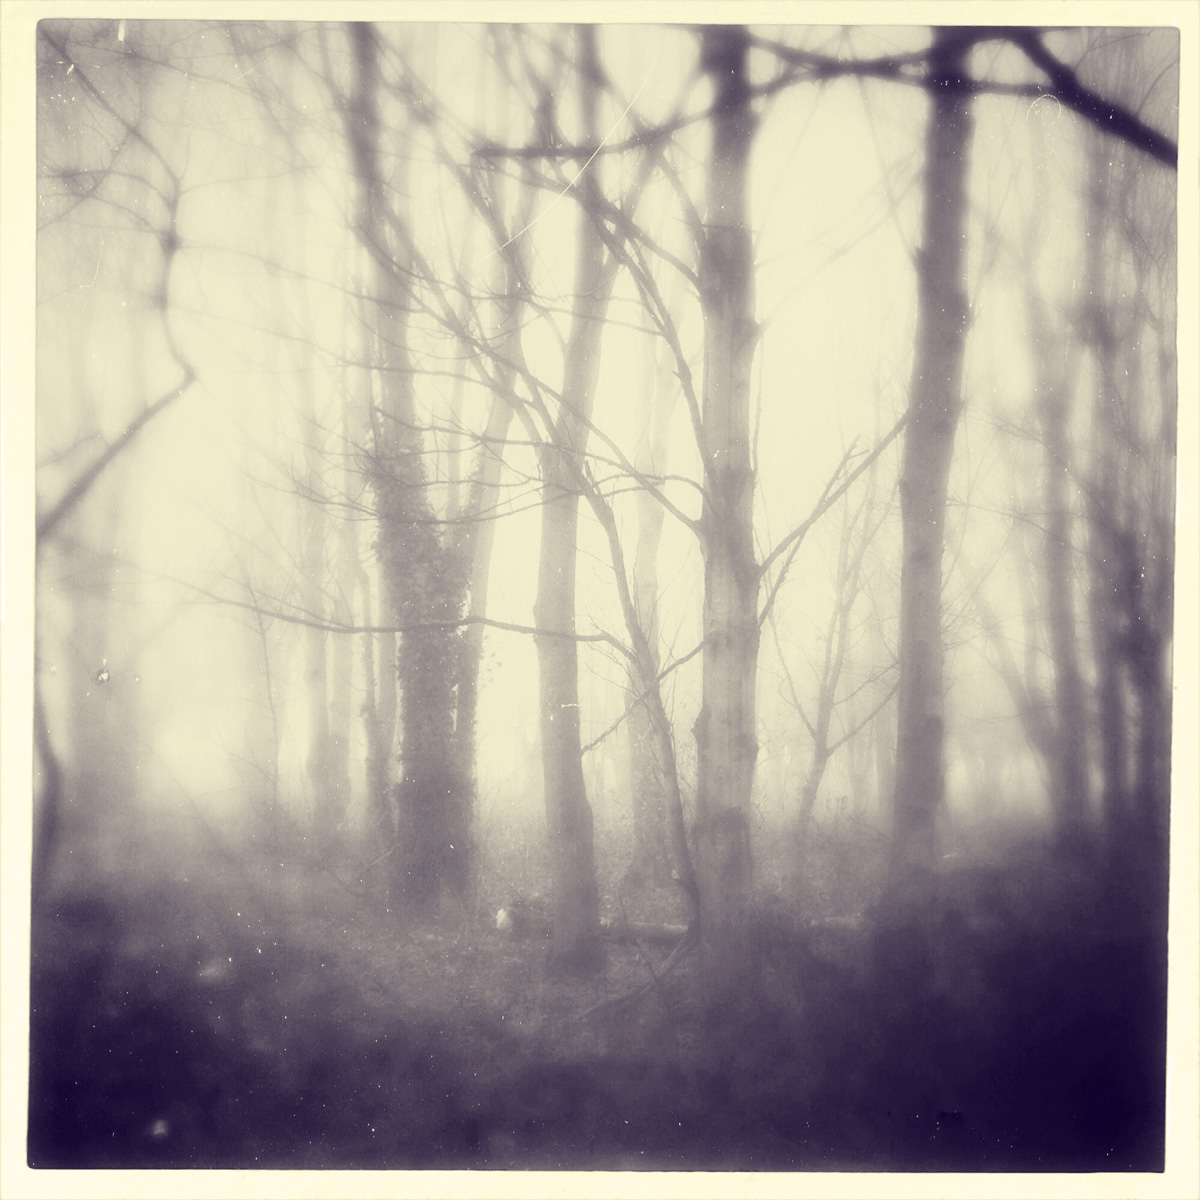 iphoneography - foggy trees 3